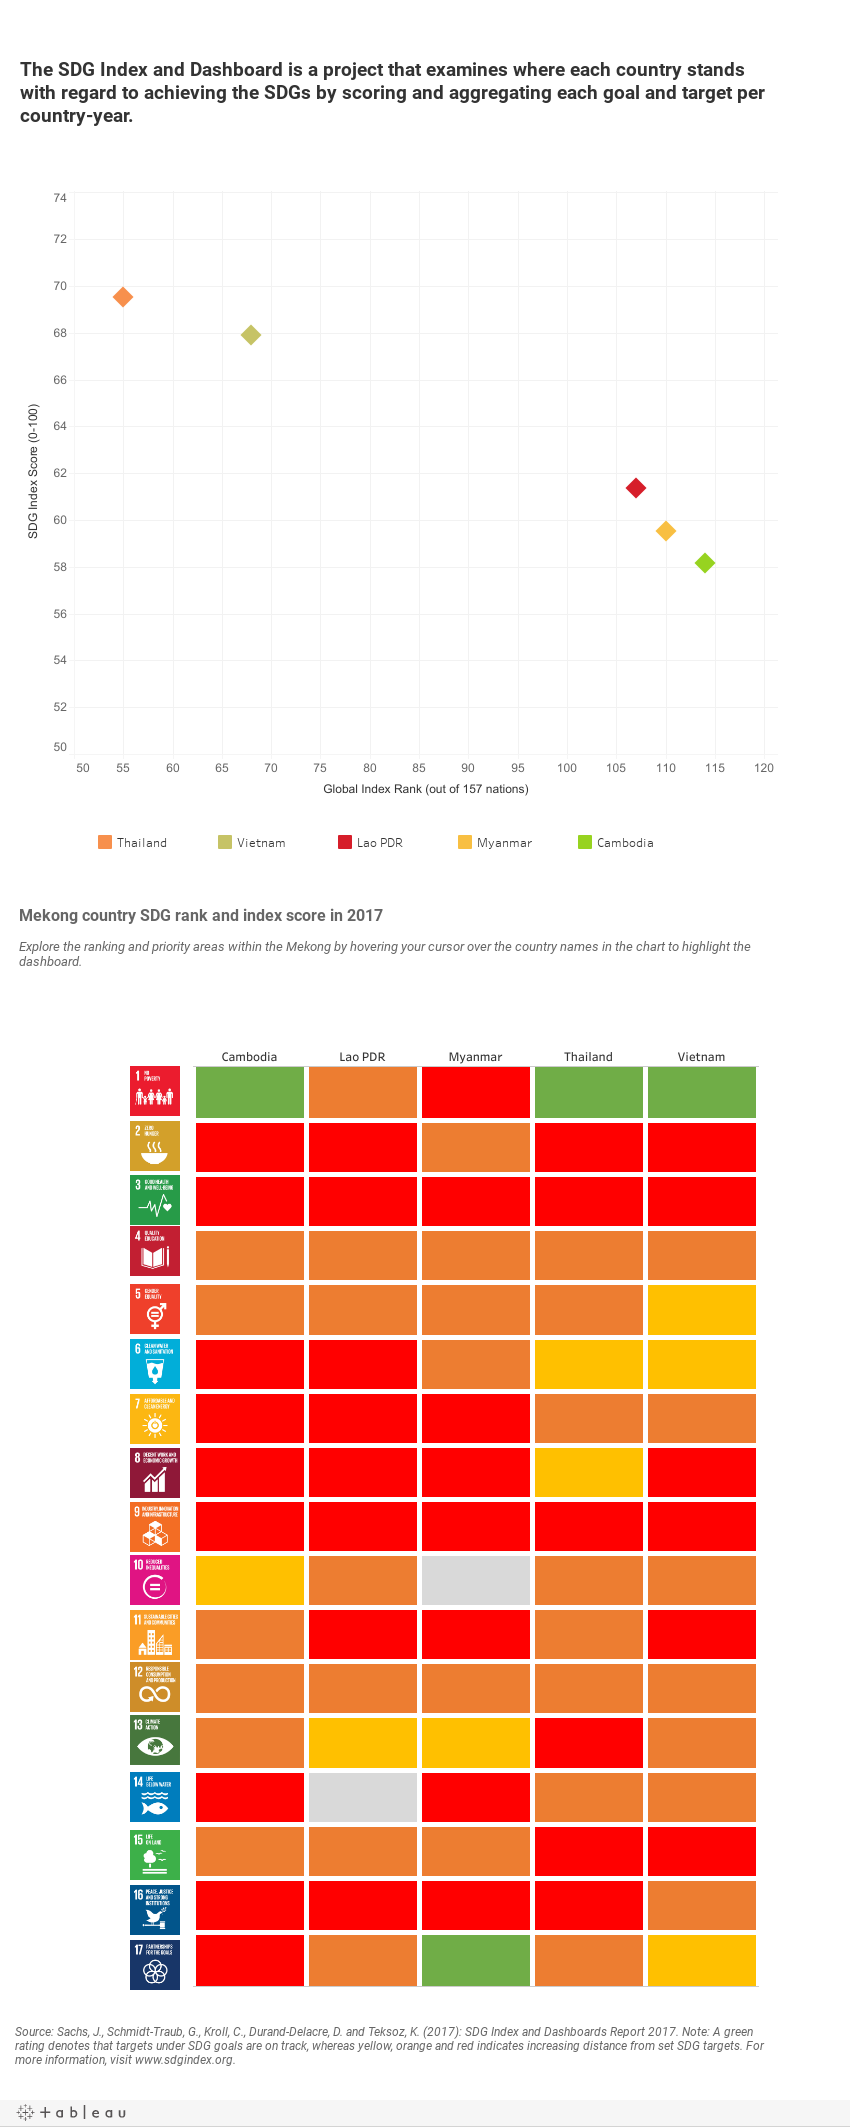 The SDG Index and Dashboard is a project that examines where each country stands with regard to achieving the SDGs by scoring and aggregating each goal and target per country-year.